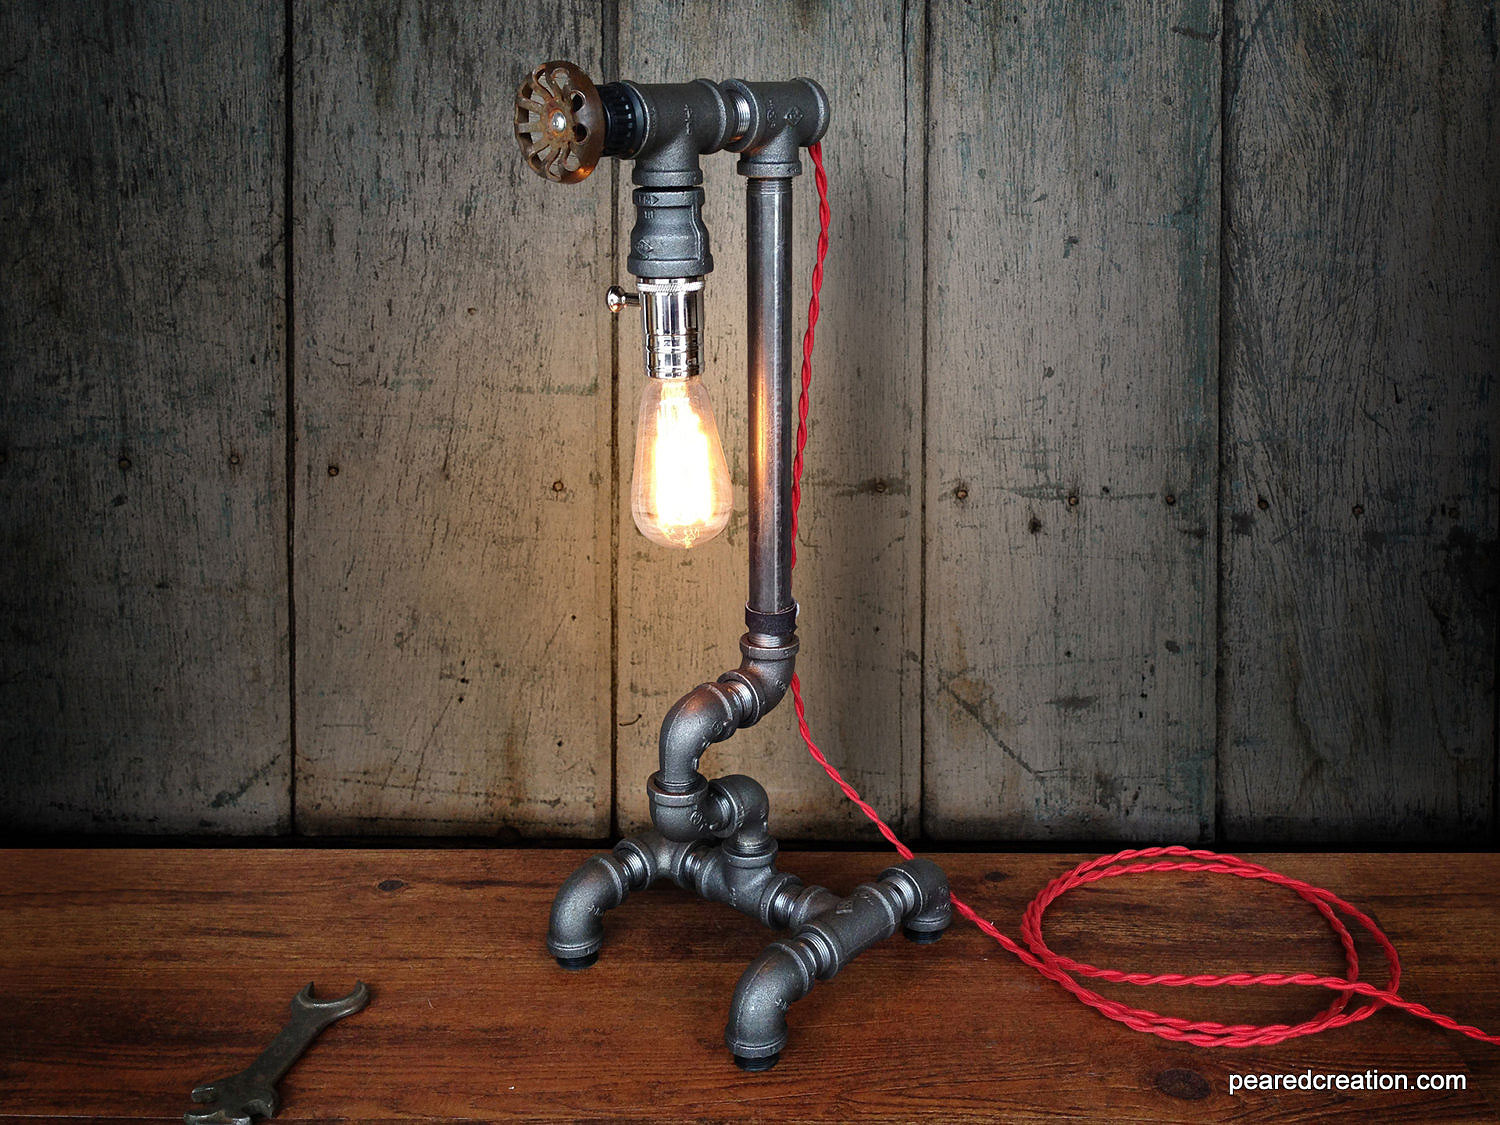 The Industrial Lamp by Pear Creation